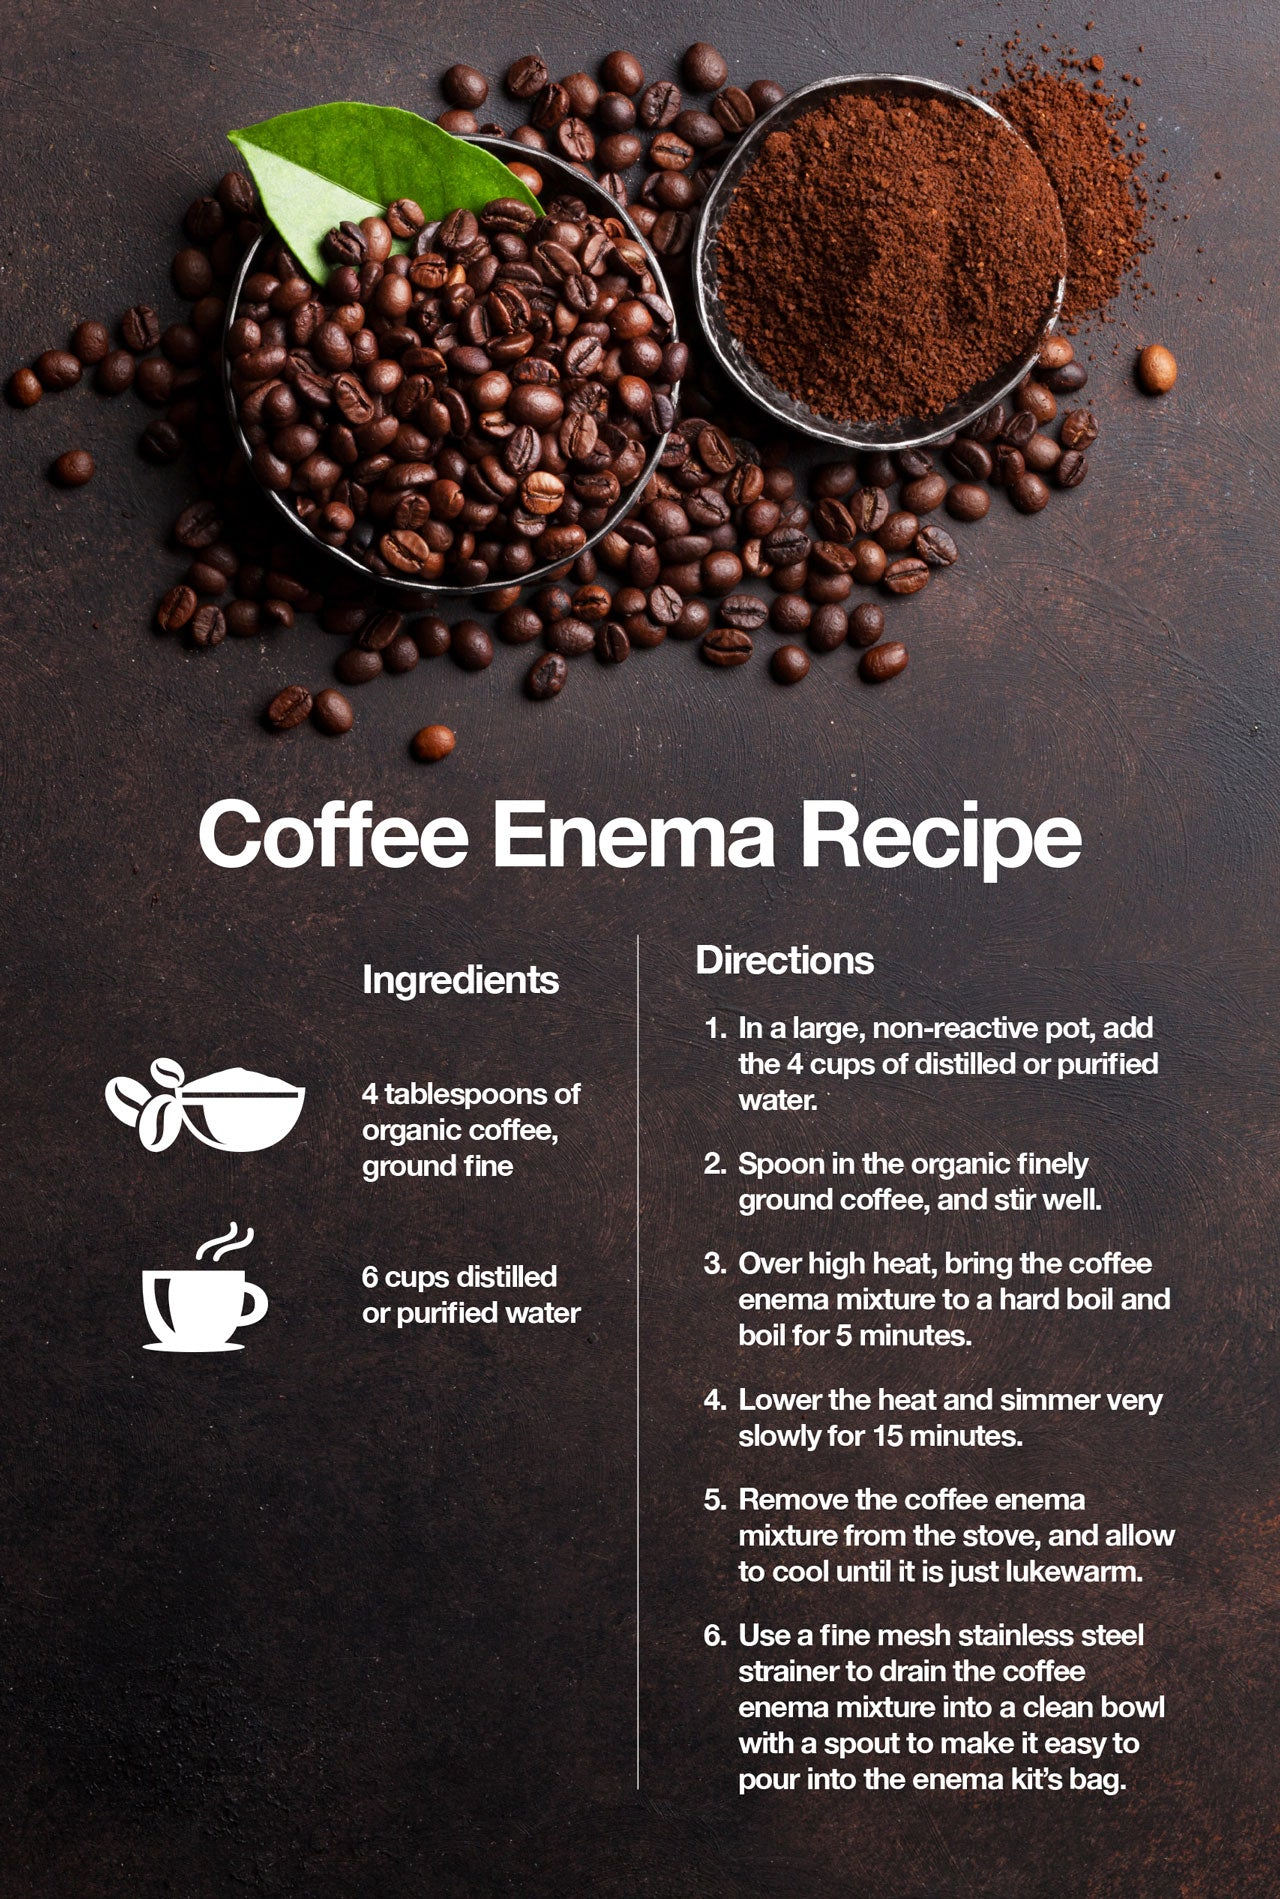 Here is a recipe for a coffee enema.